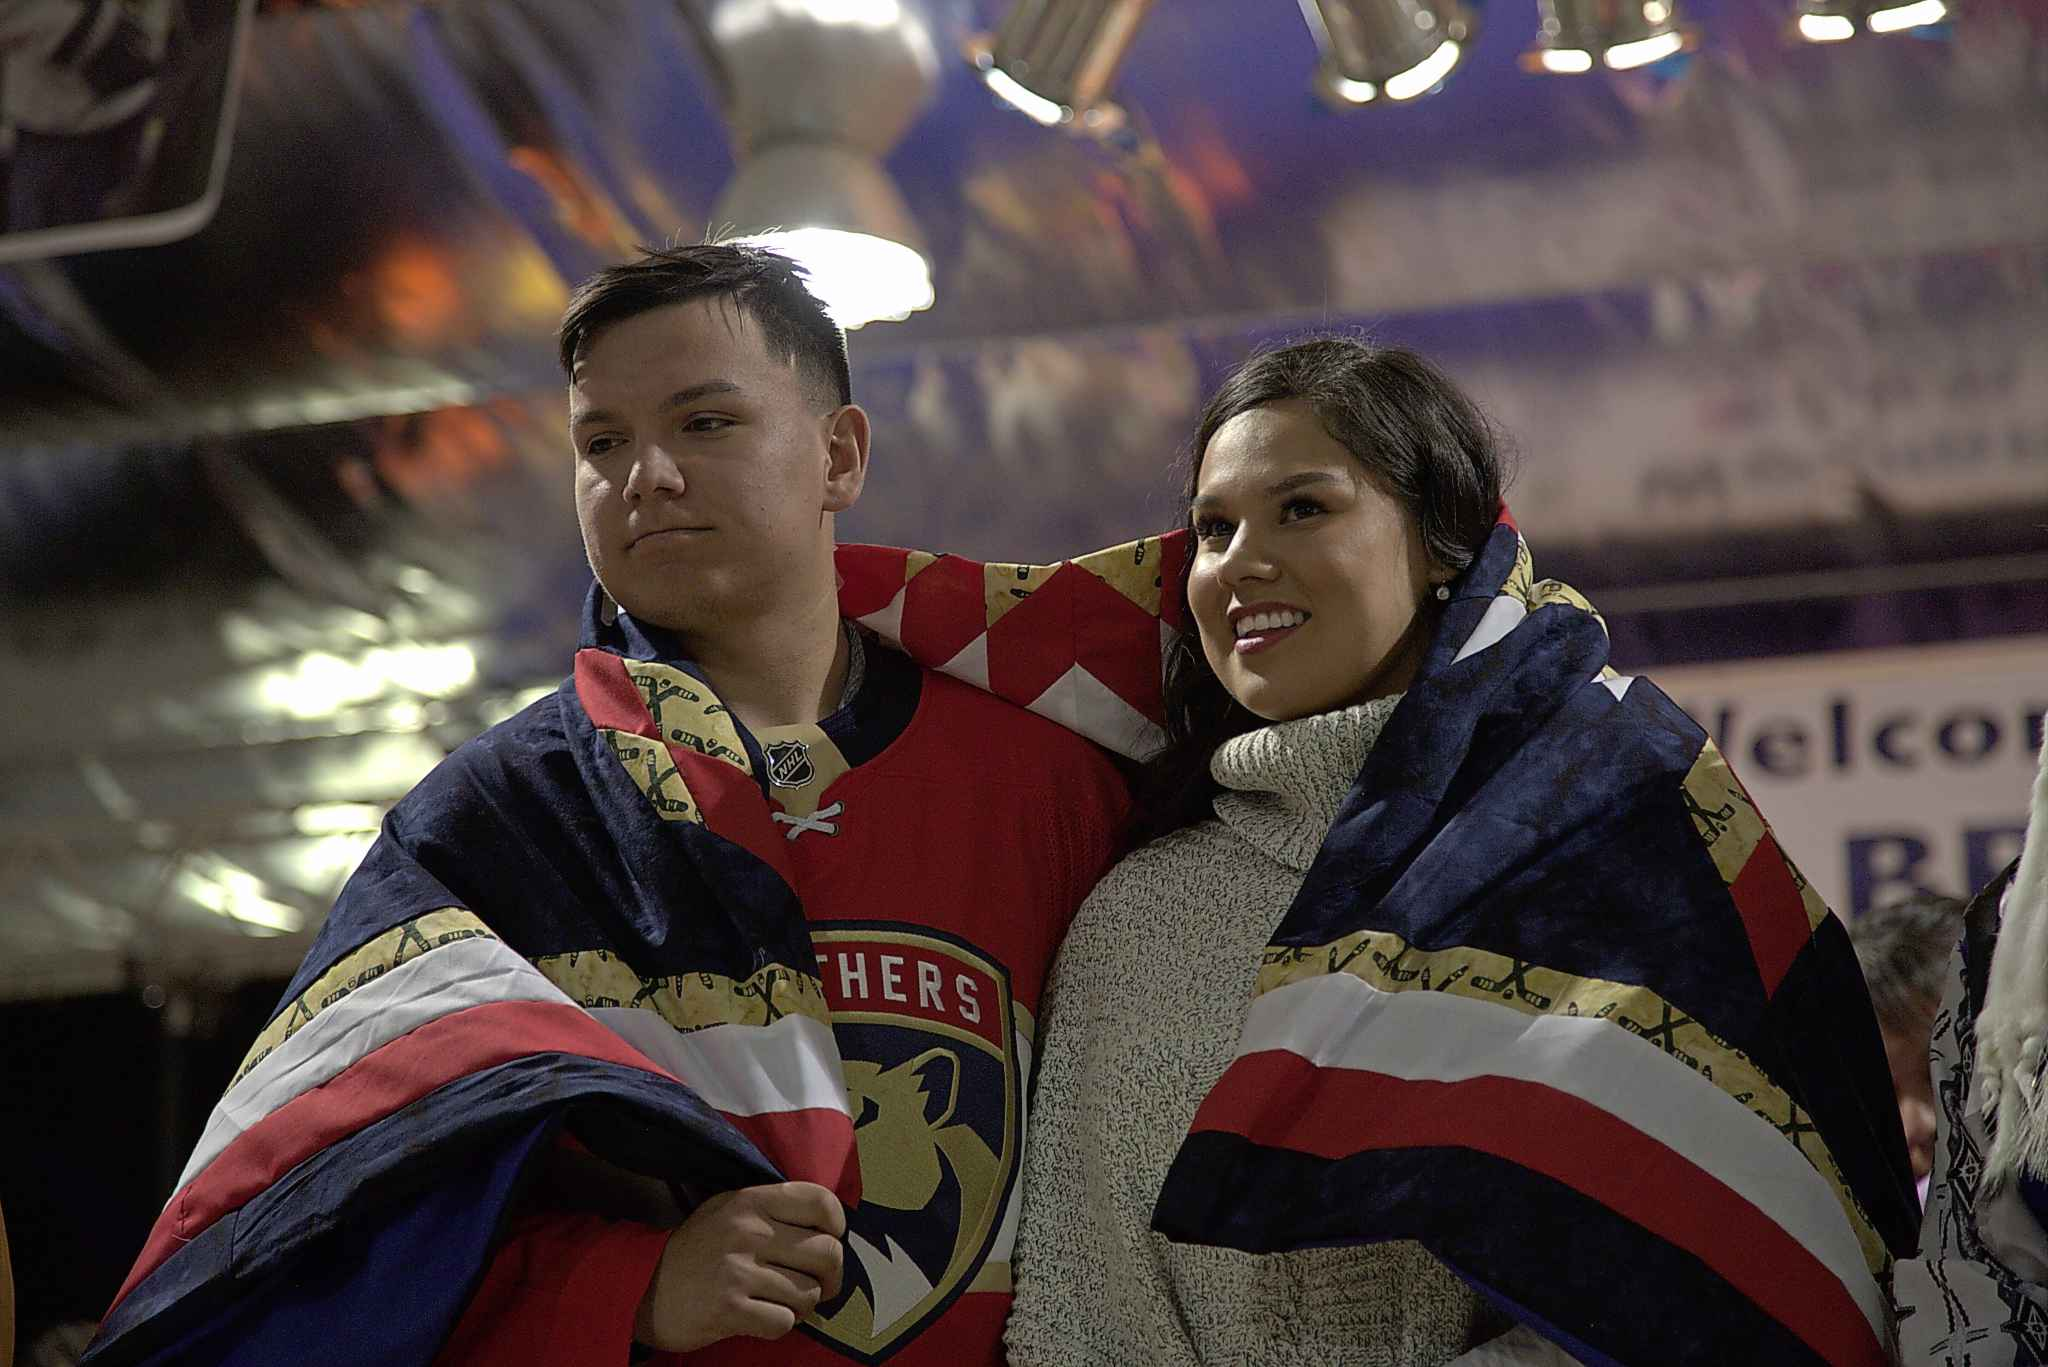 Brady Keeper and partner Shaylyn, wrapped in a blanket presented to them at a homecoming ceremony, stand for an honour song at the Cross Lake arena. MELISSA MARTIN / WINNIPEG FREE PRESS